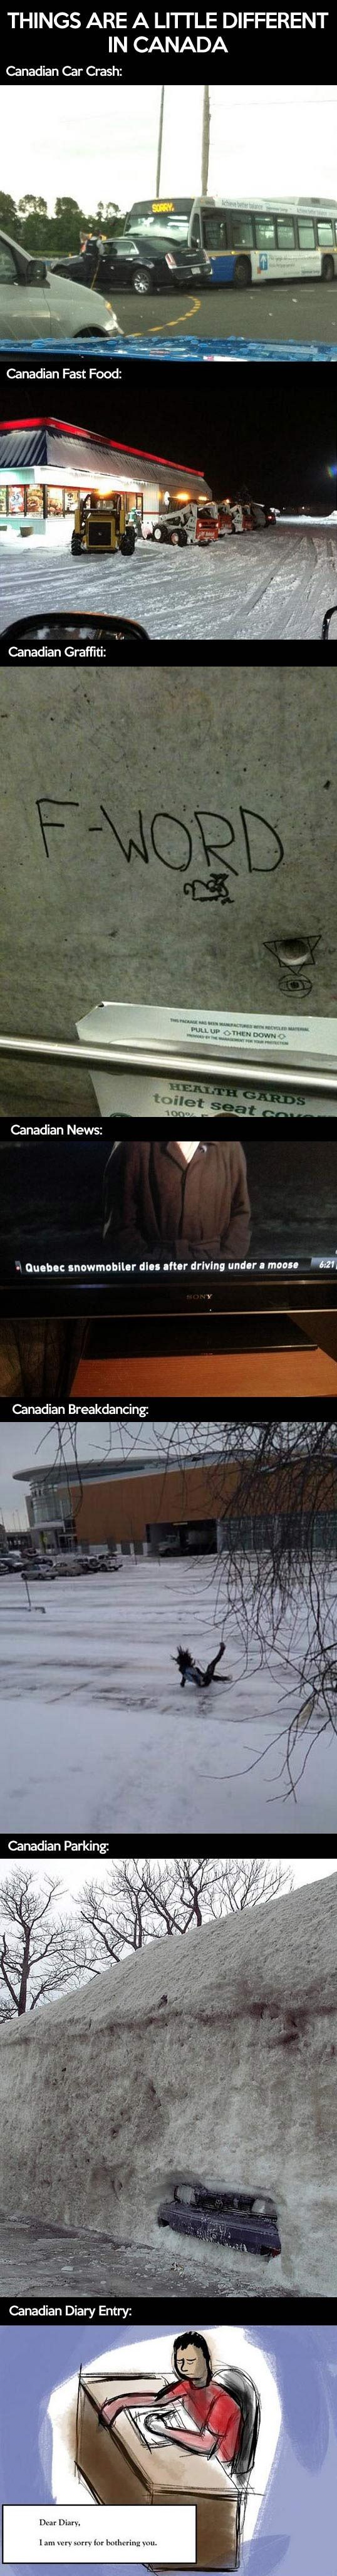 Things Are Different In Canada - this page is HILARIOUS